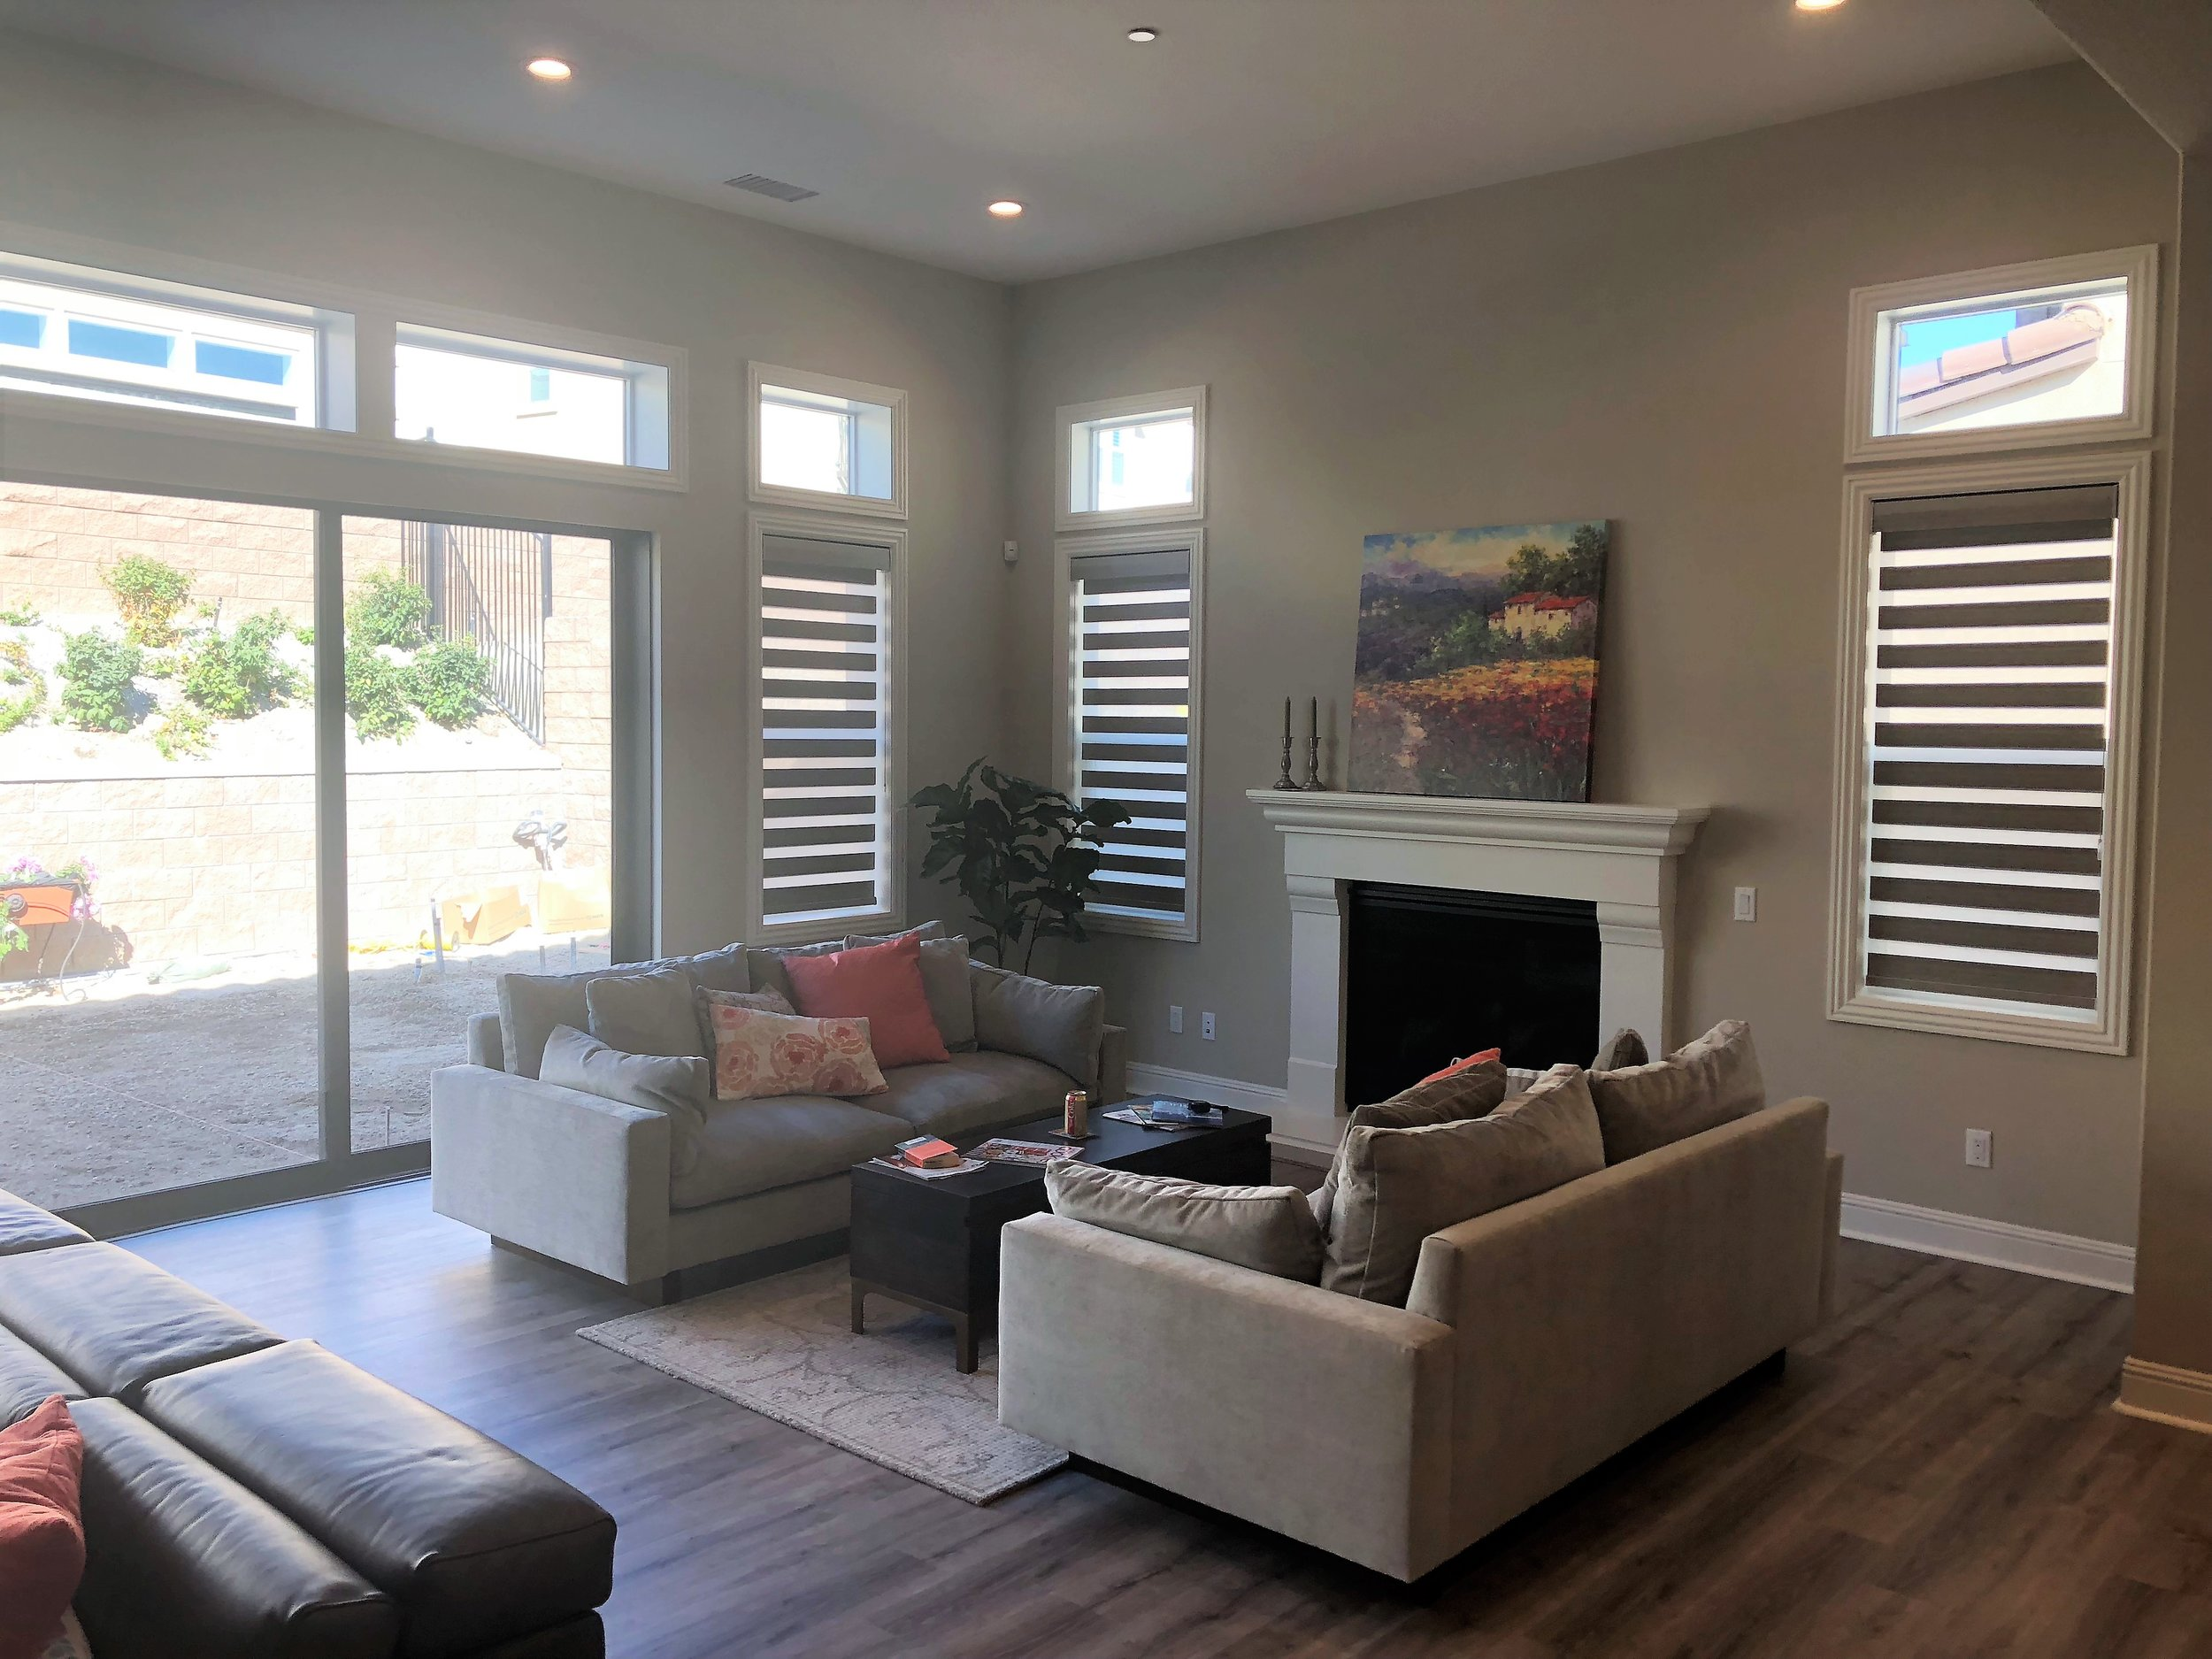 Gallery of Custom Blinds, Shutters and Shades in Carlsbad, California (CA) like Roller Shades in Homes